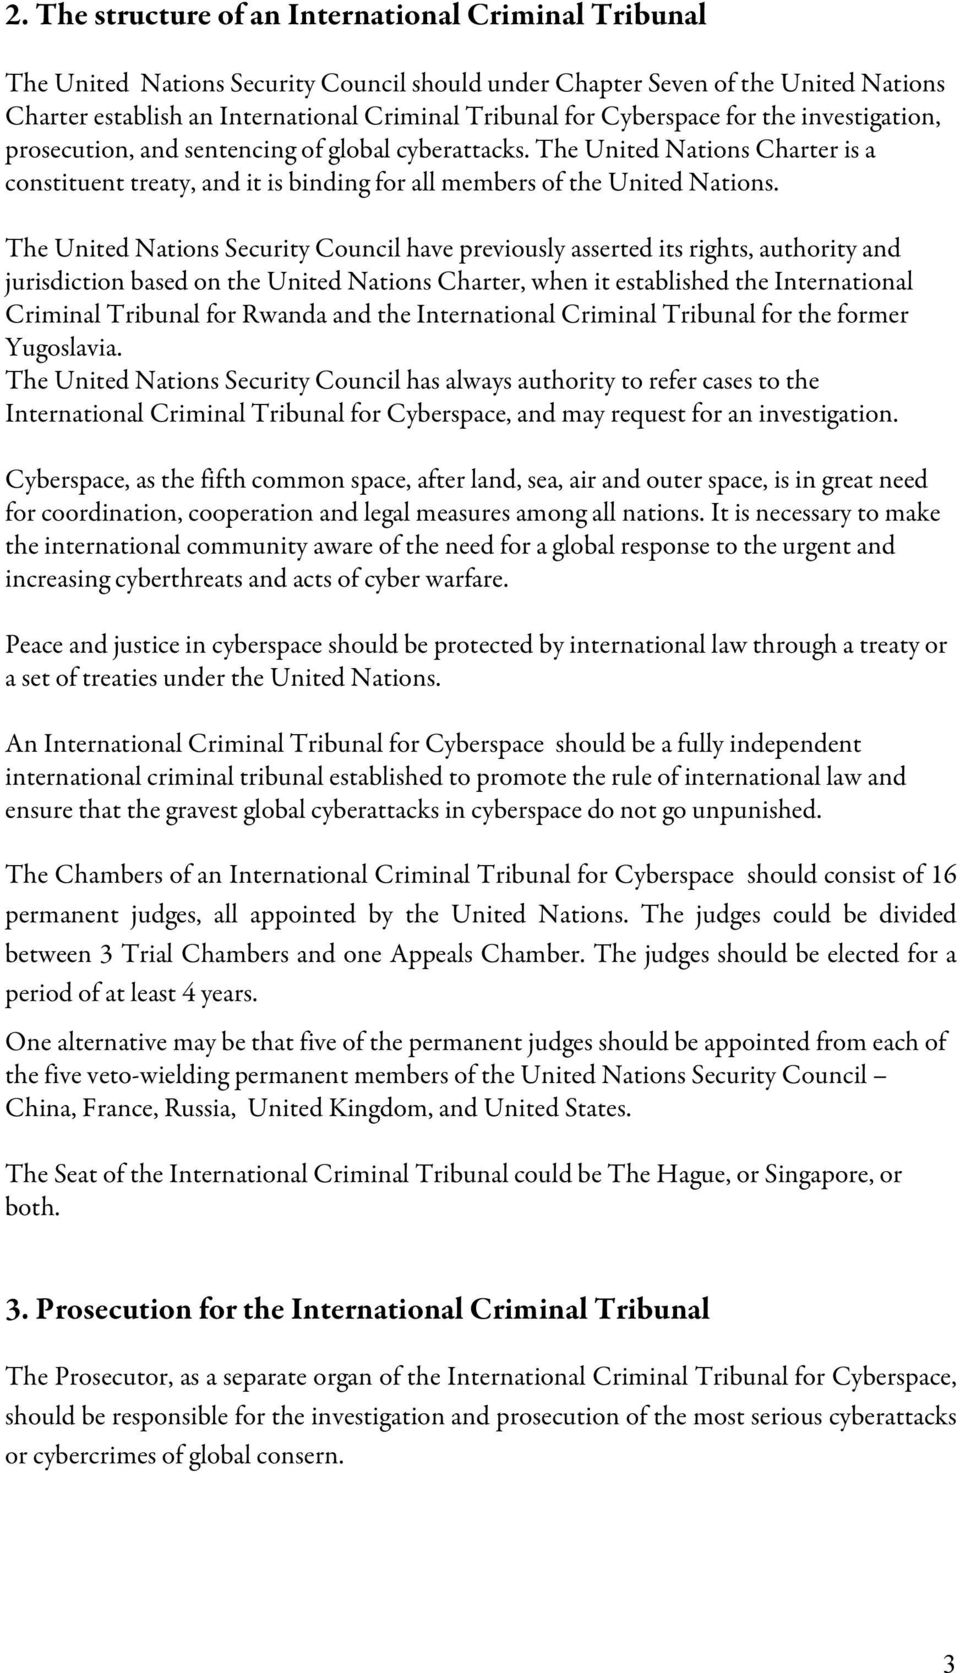 The United Nations Security Council have previously asserted its rights, authority and jurisdiction based on the United Nations Charter, when it established the International Criminal Tribunal for